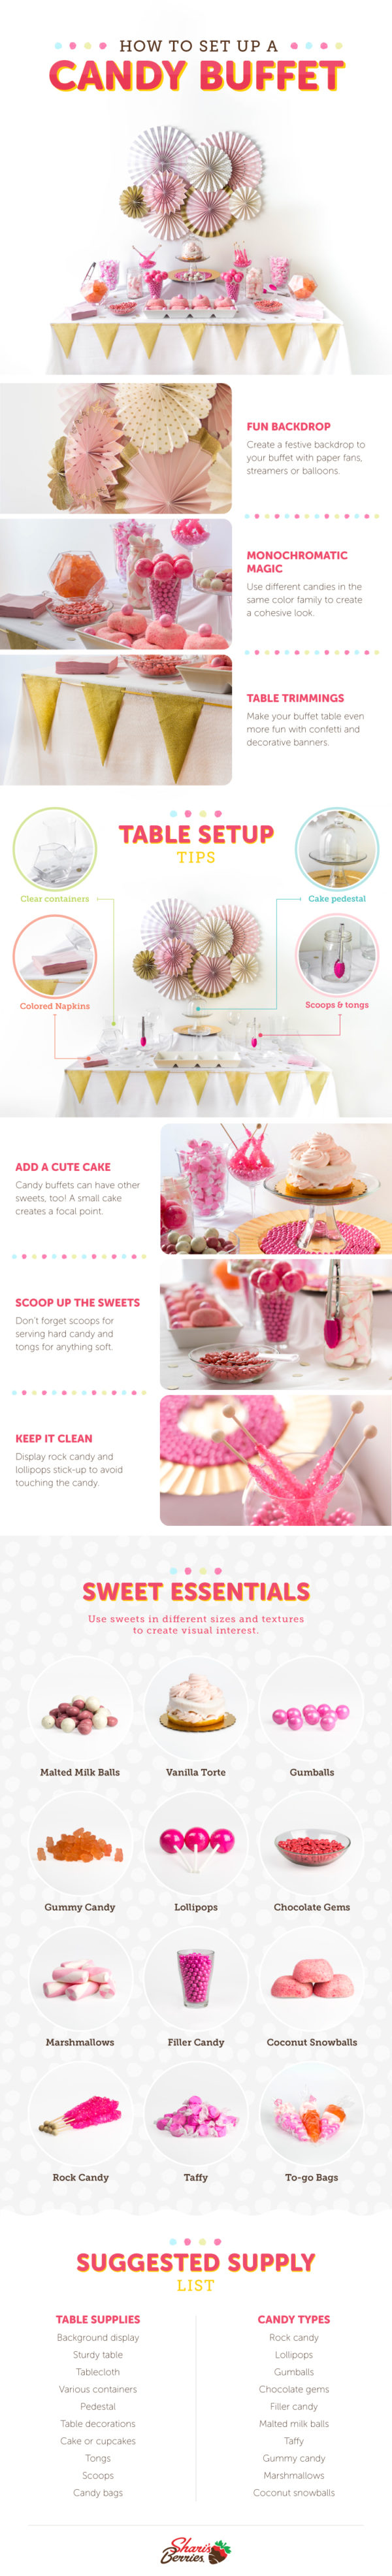 candy-buffet-do-it-yourself-baby-shower-decorations